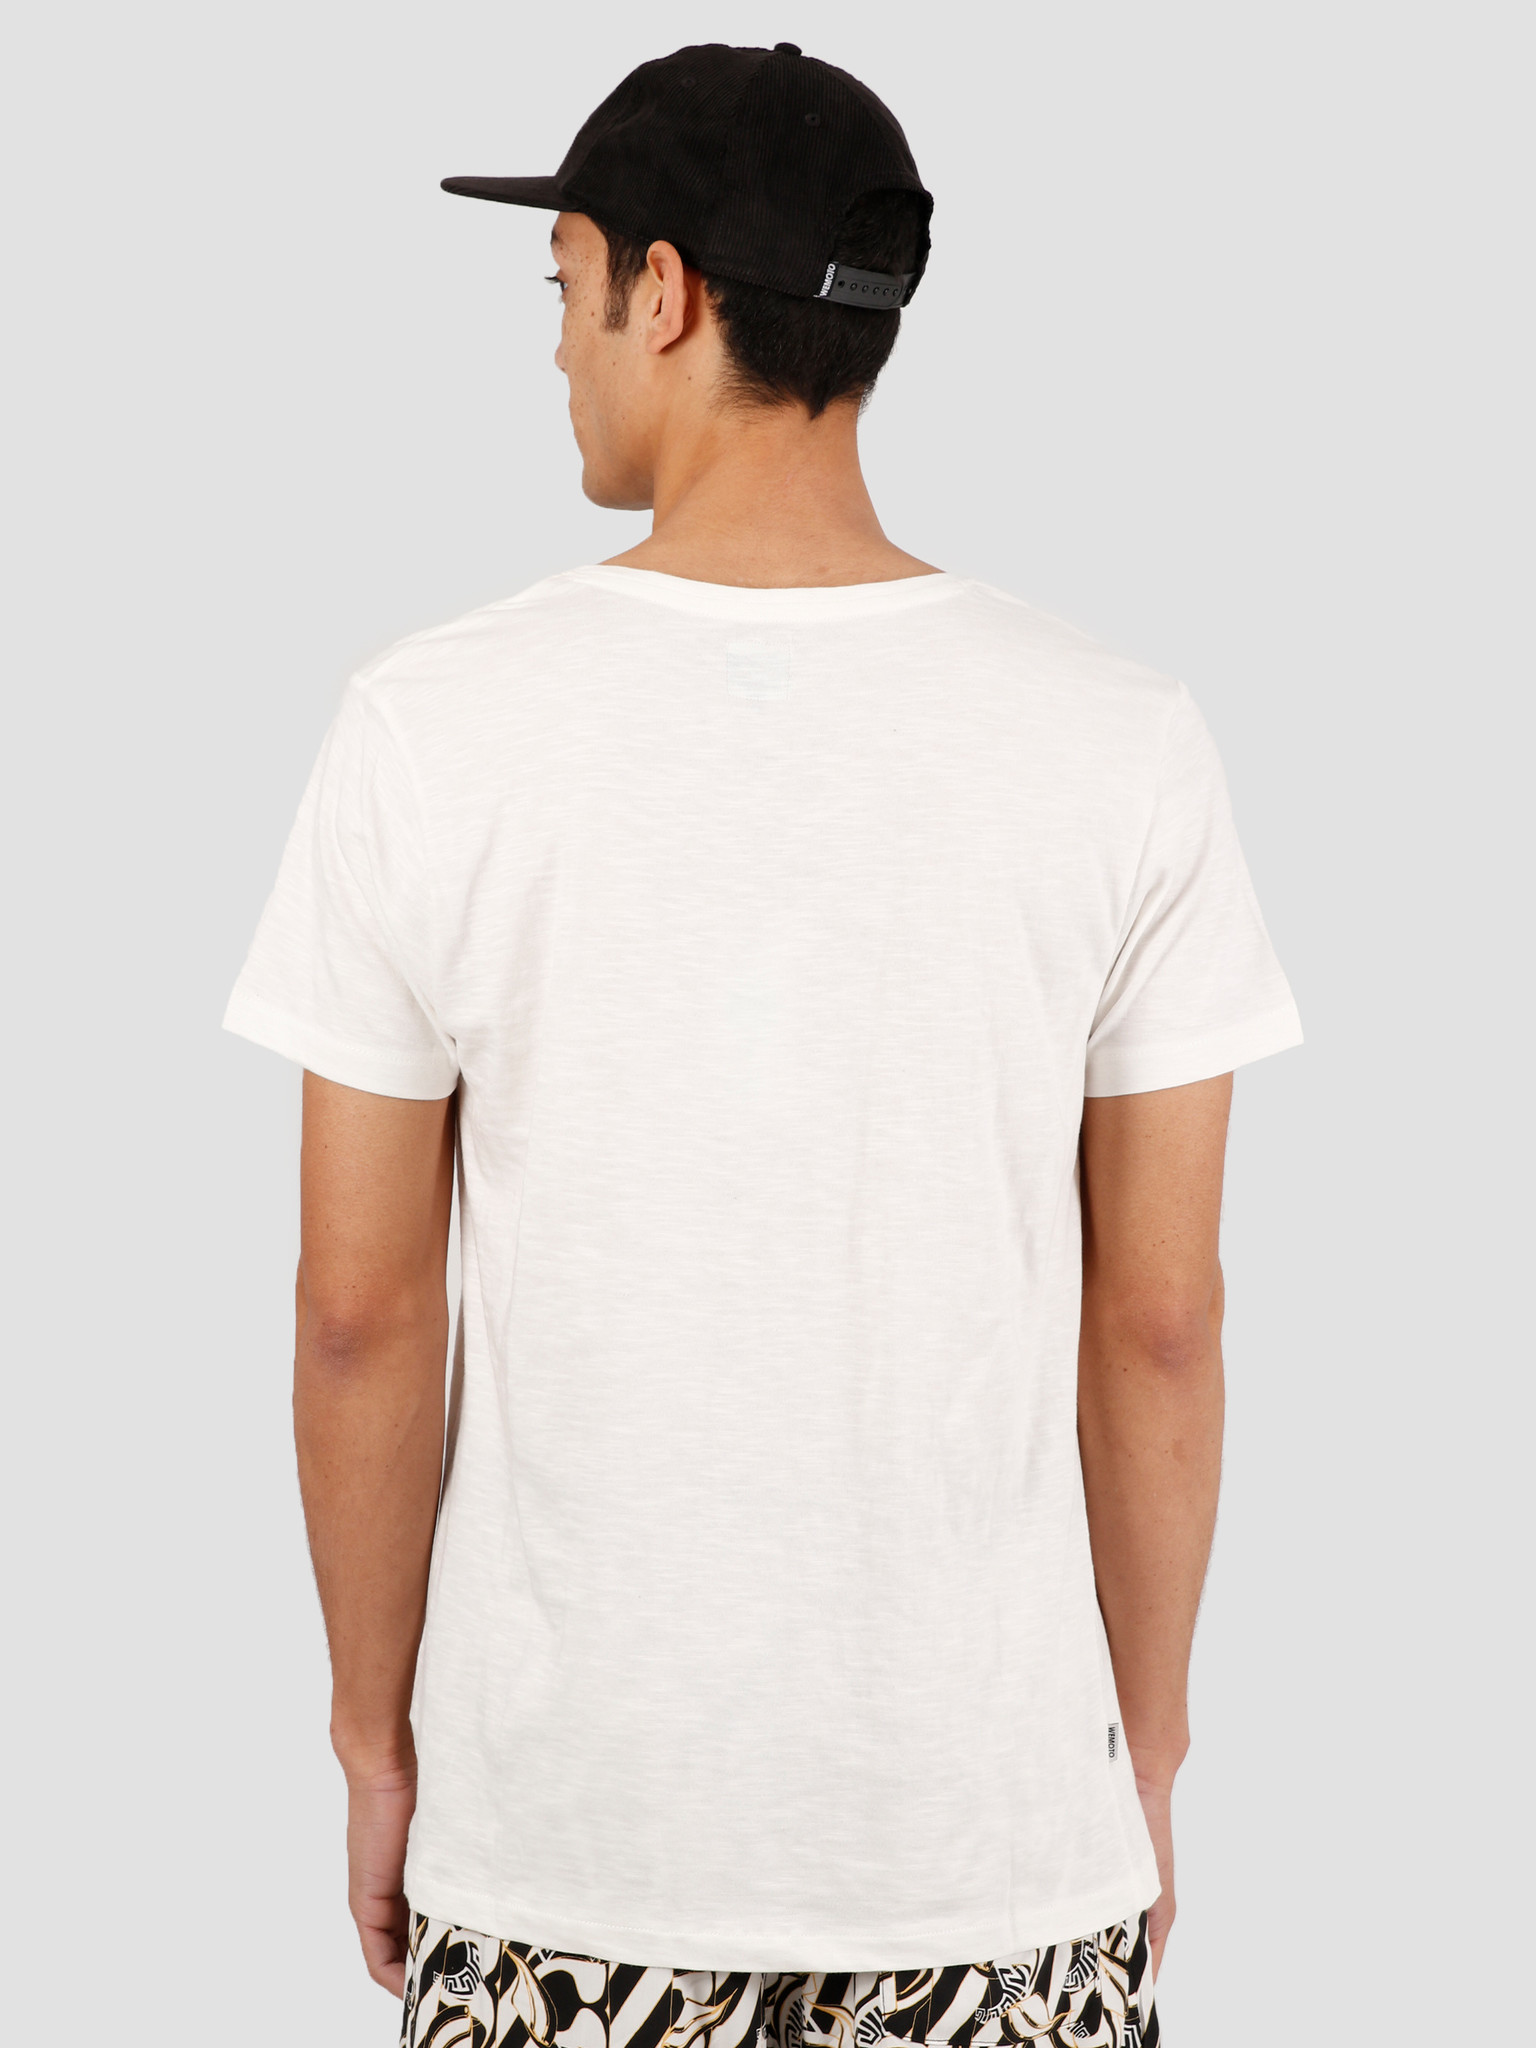 Wemoto Wemoto Try T-Shirt Off White 151.251-201